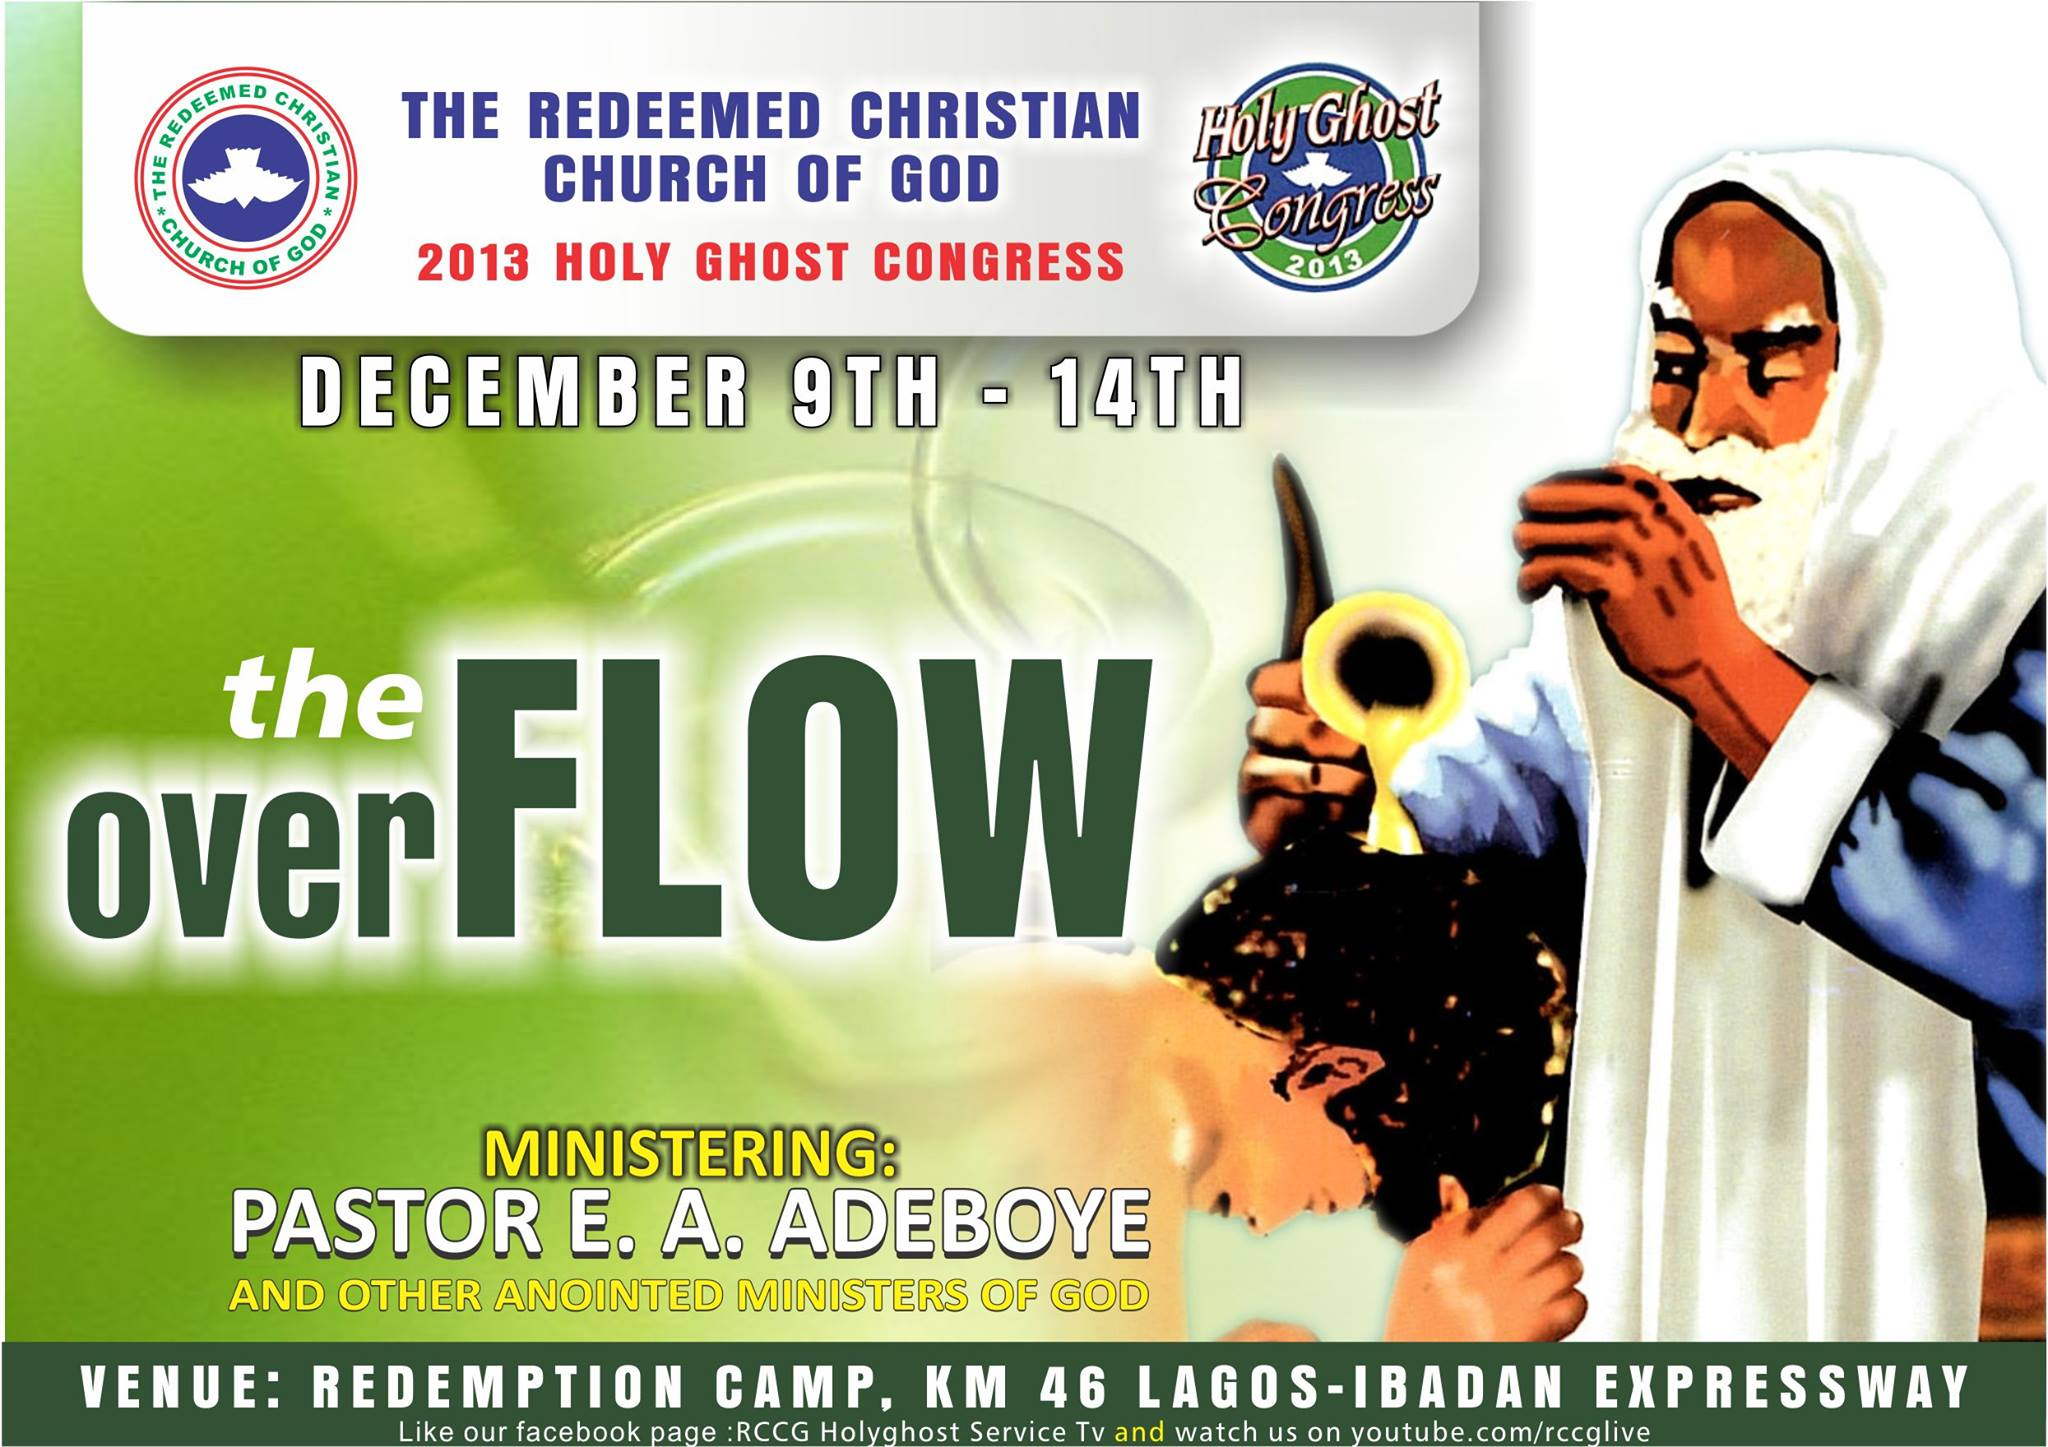 RCCG-Holy-Ghost-Congress-2013.jpg